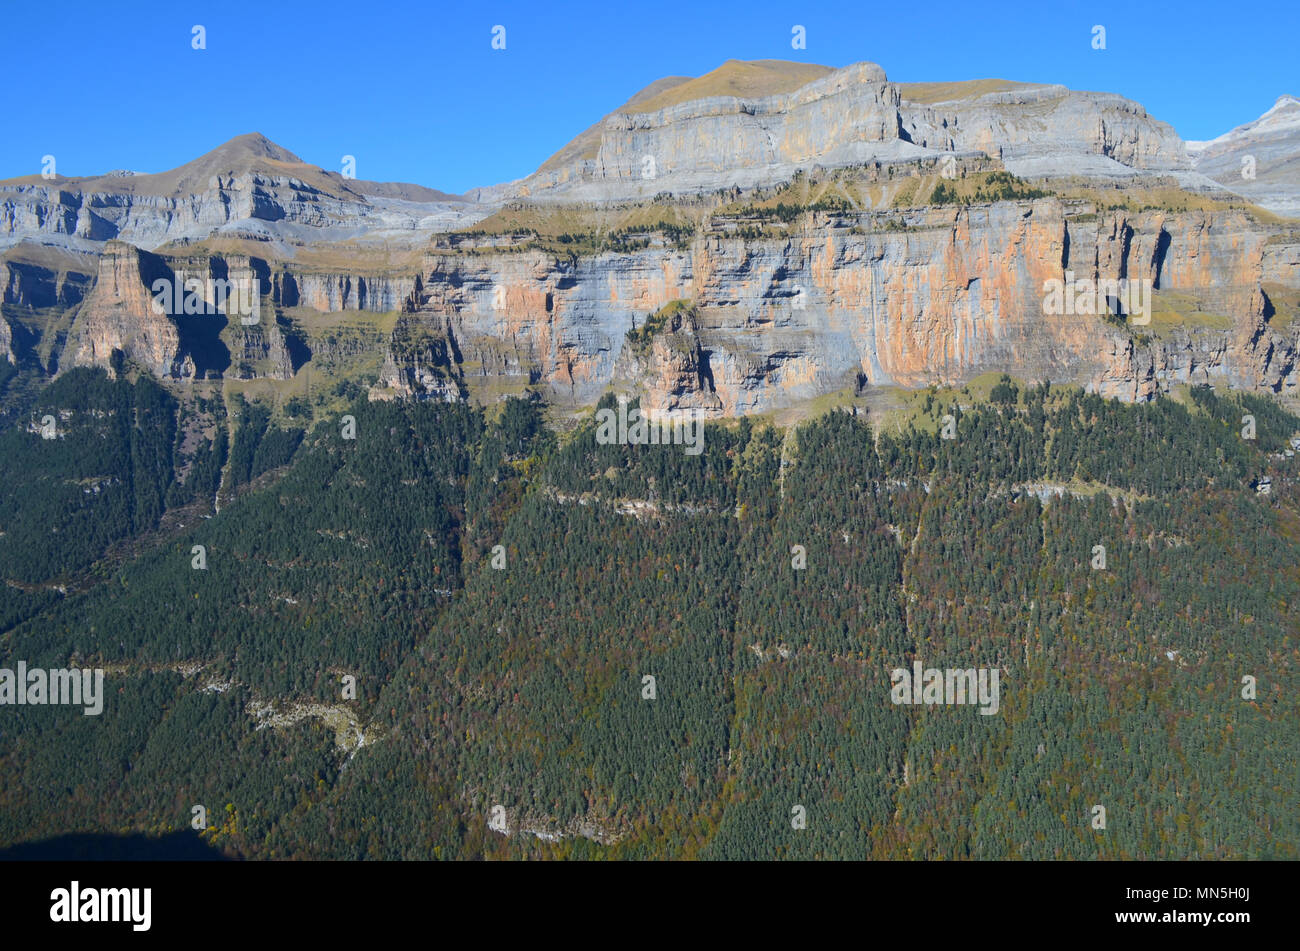 The Ordesa valley, a national park in the Pyrenees range Stock Photo